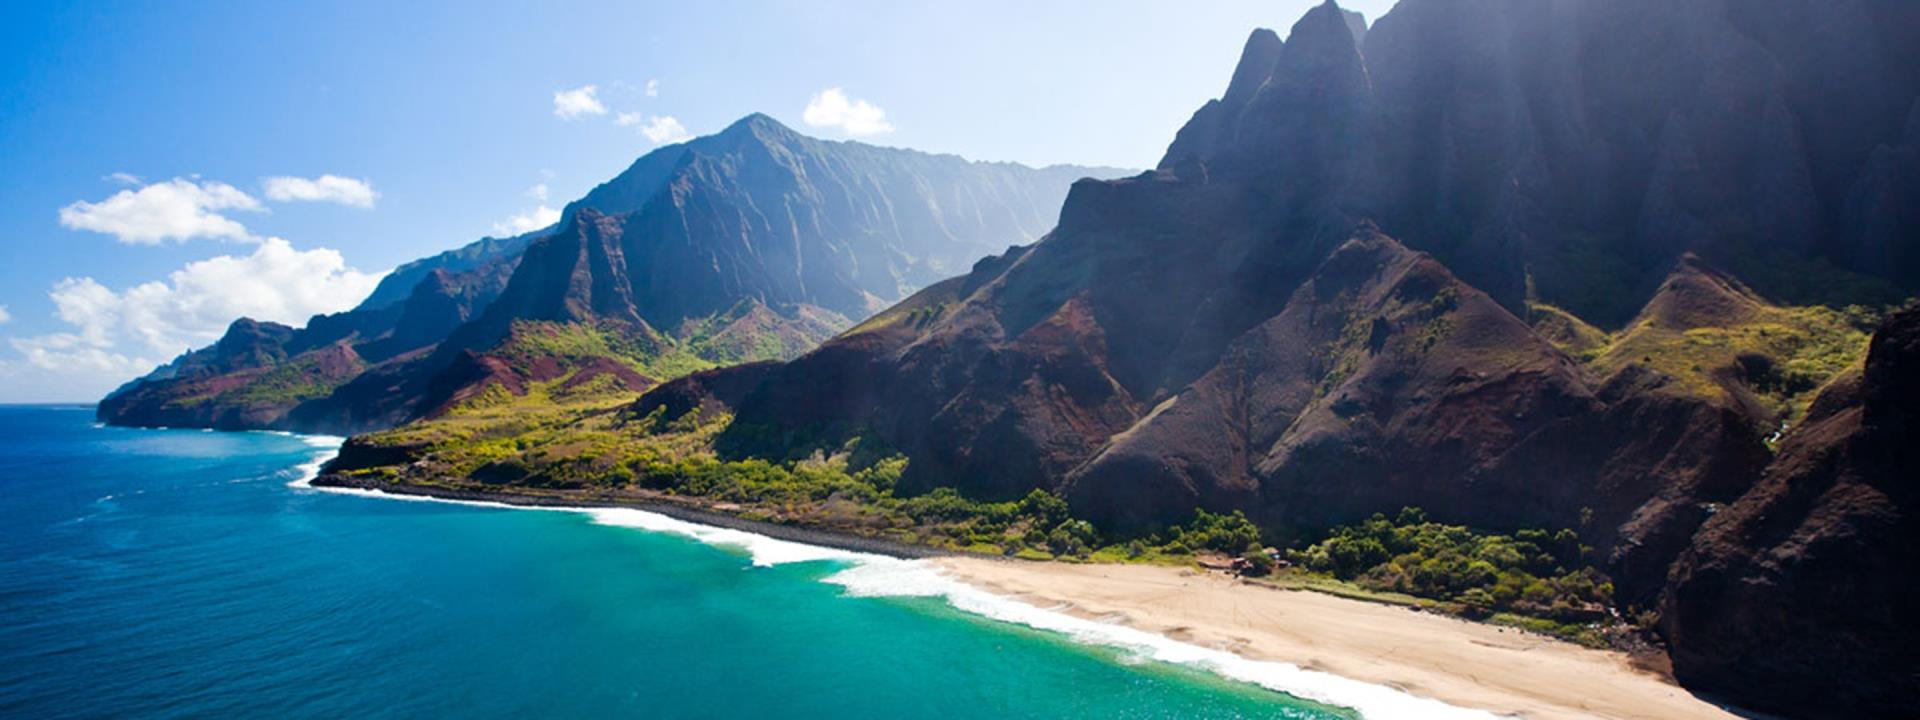 The Most Beautiful Hiking Trails in Kauai